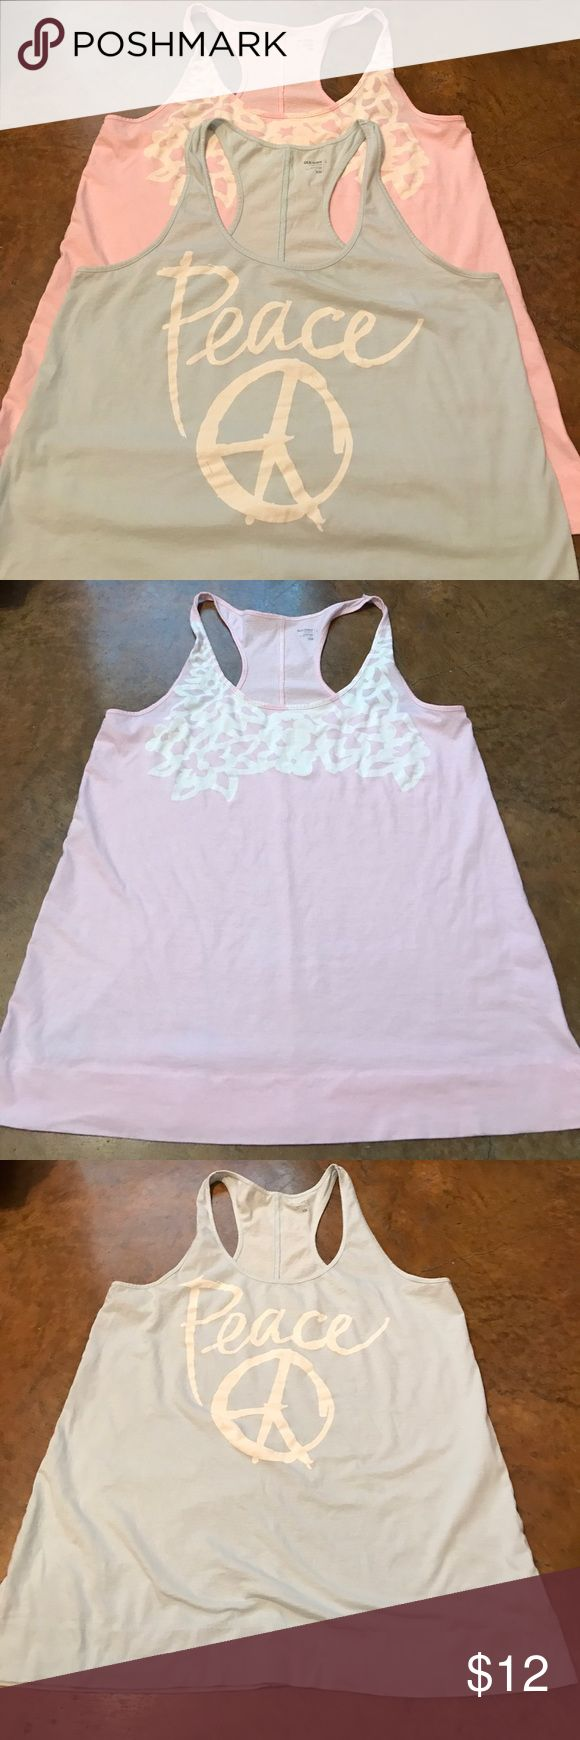 ☀️ Women's Old Navy Razorback Tanks (2) ☀️ GUC set of two (2) Old Navy Razorback tanks. One is pale blue with a peace symbol. The other is pale pink with a floral design. Both size large / L. Old Navy Tops Tank Tops